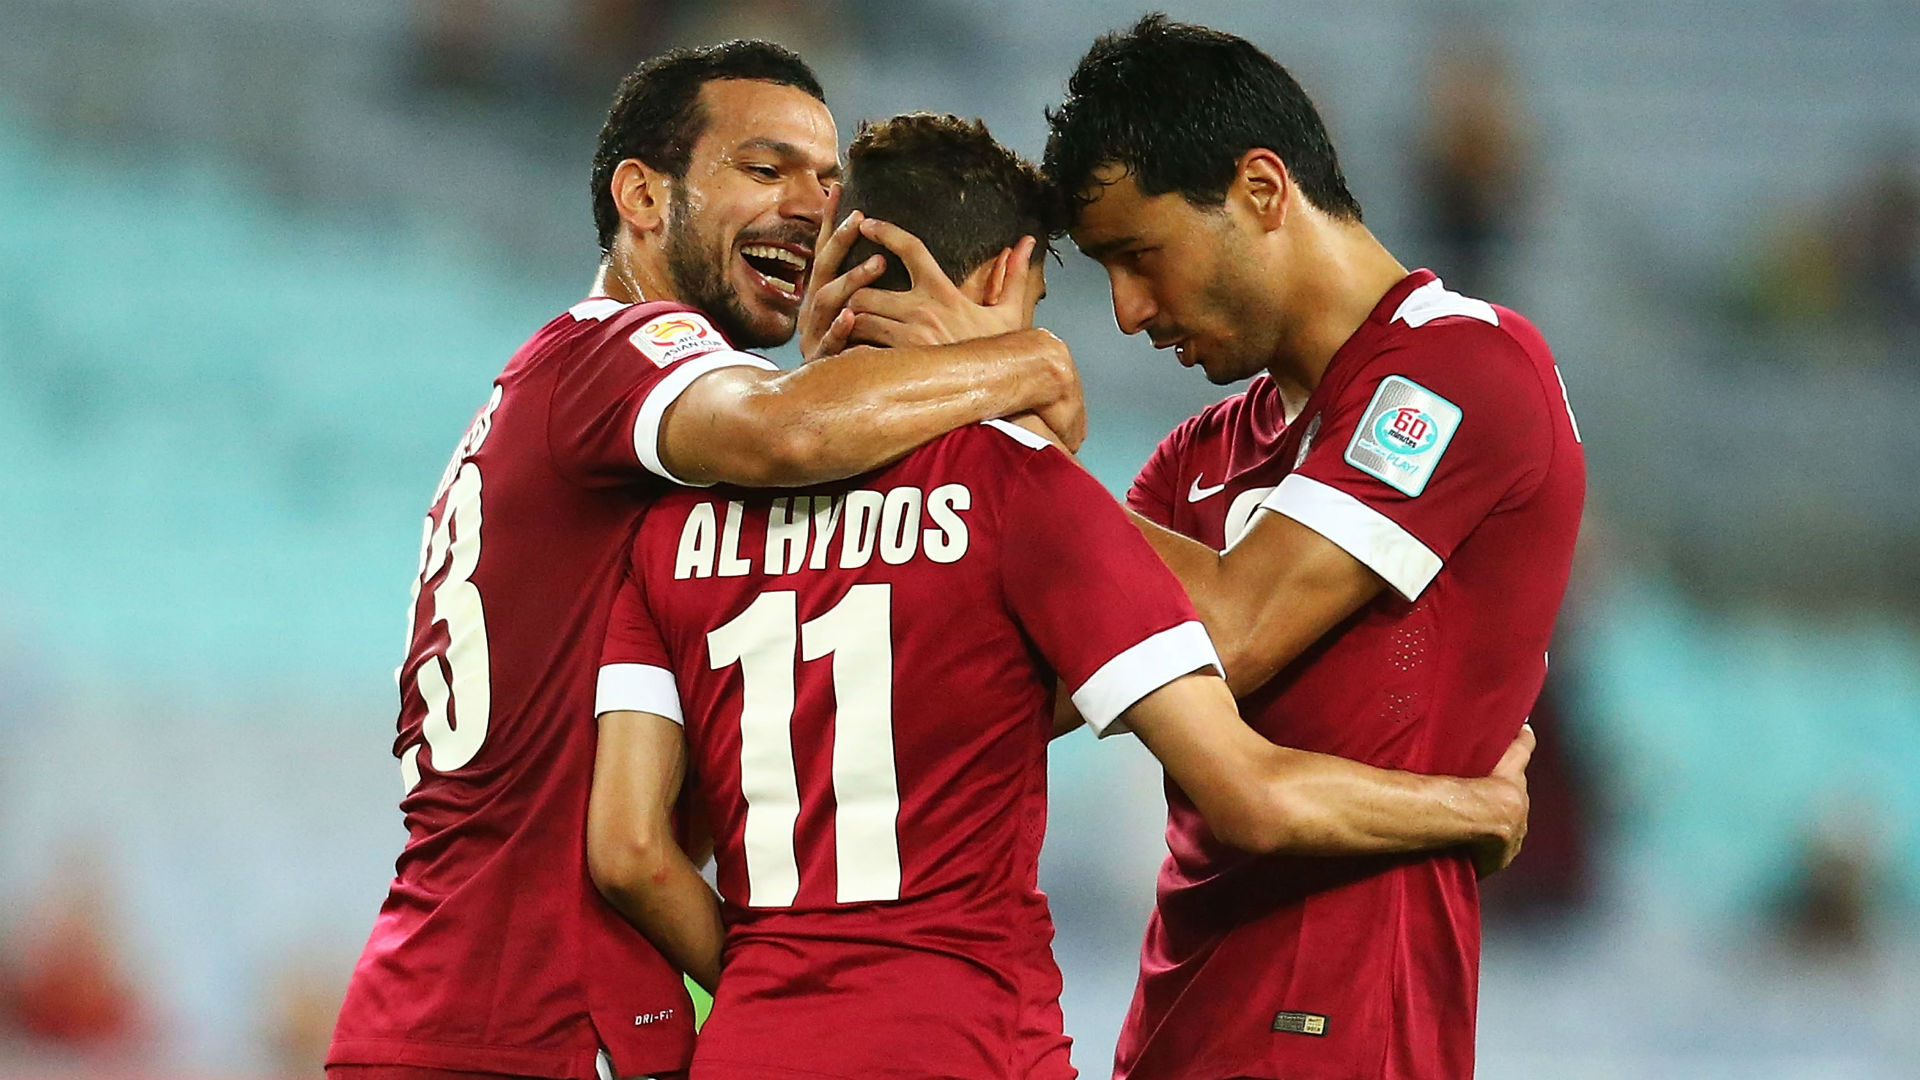 Qatar keep hopes alive after defeating South Korea